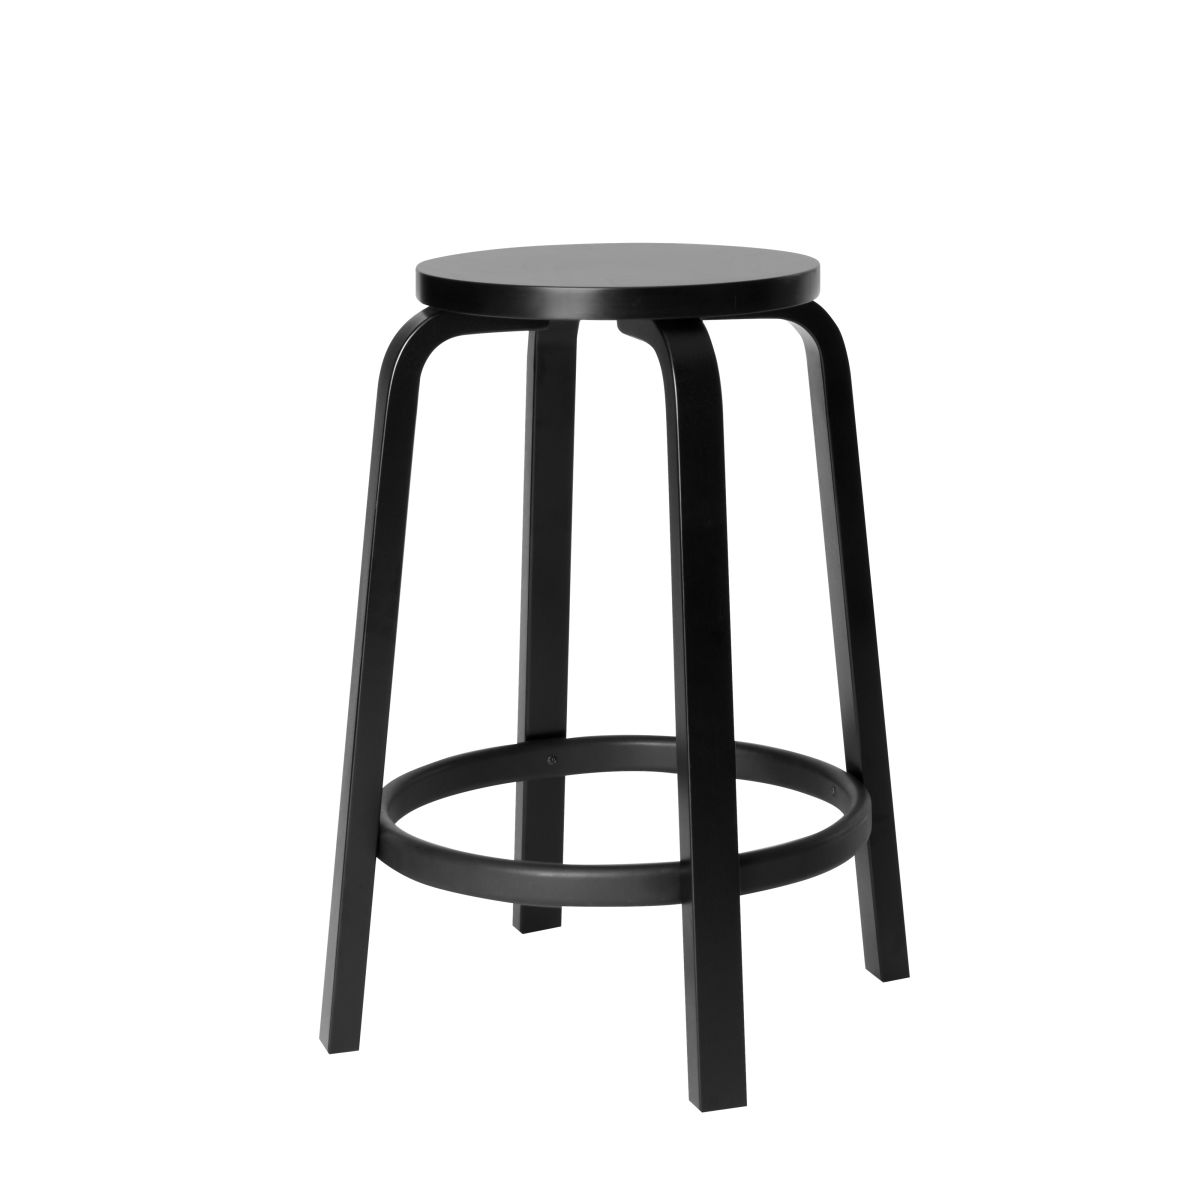 Bar-Stool-64-Black-Lacquer_Cut_Out_65Cm-2220617